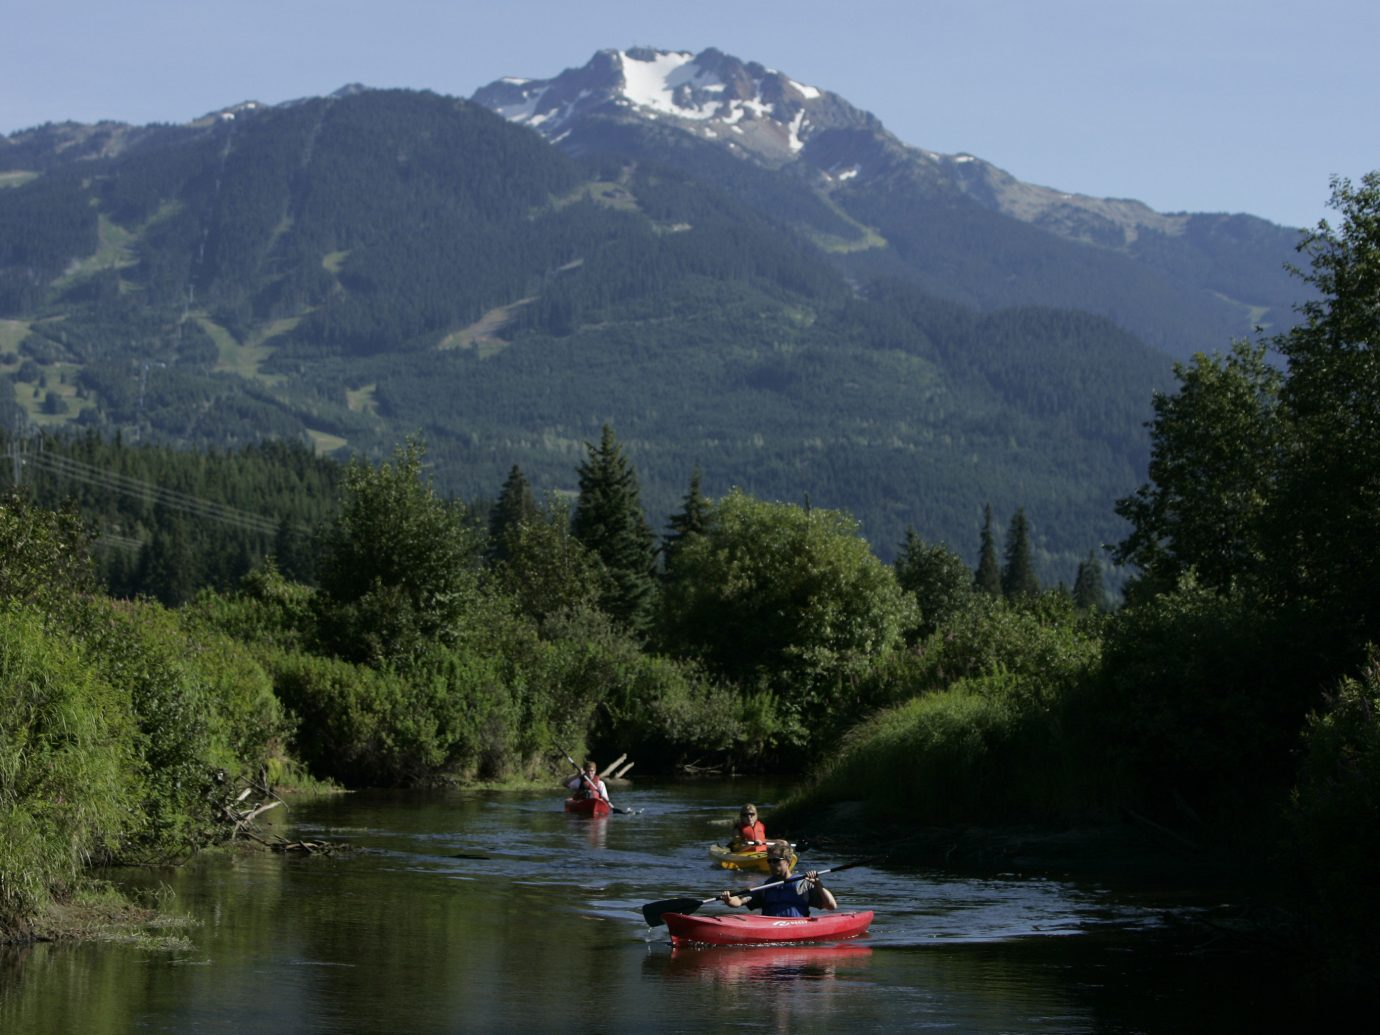 Hotels mountain outdoor tree water sky Boat River Lake vehicle boating wilderness Nature kayak kayaking canoe watercraft paddle sports equipment traveling surrounded Forest wooded